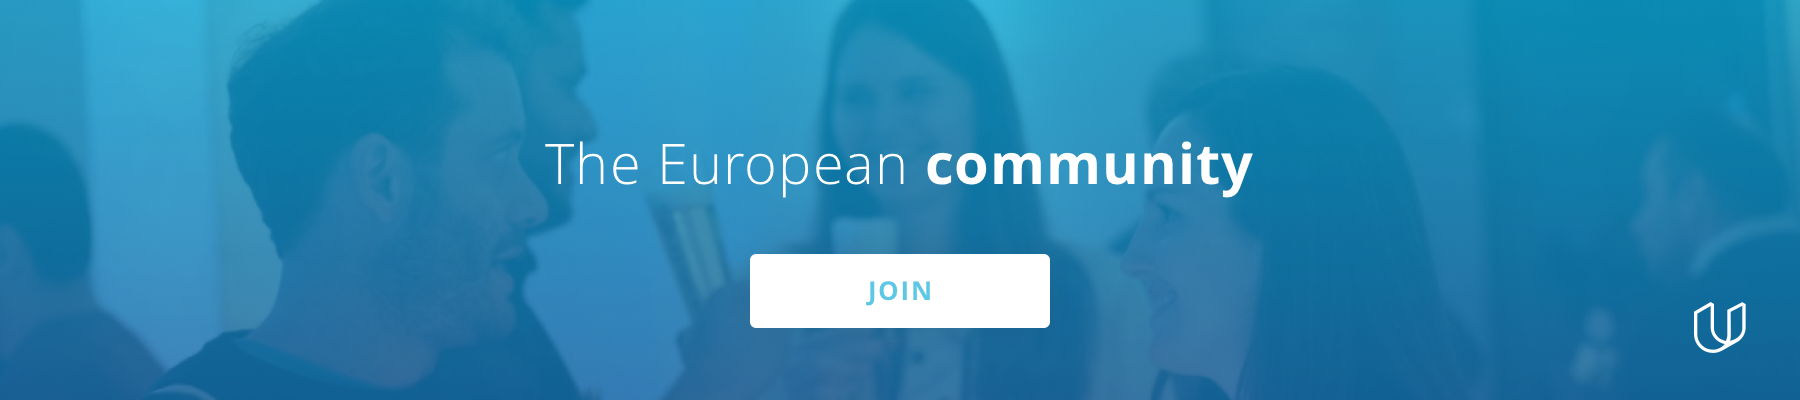 Join Udacity Europe Facebook Commmunity